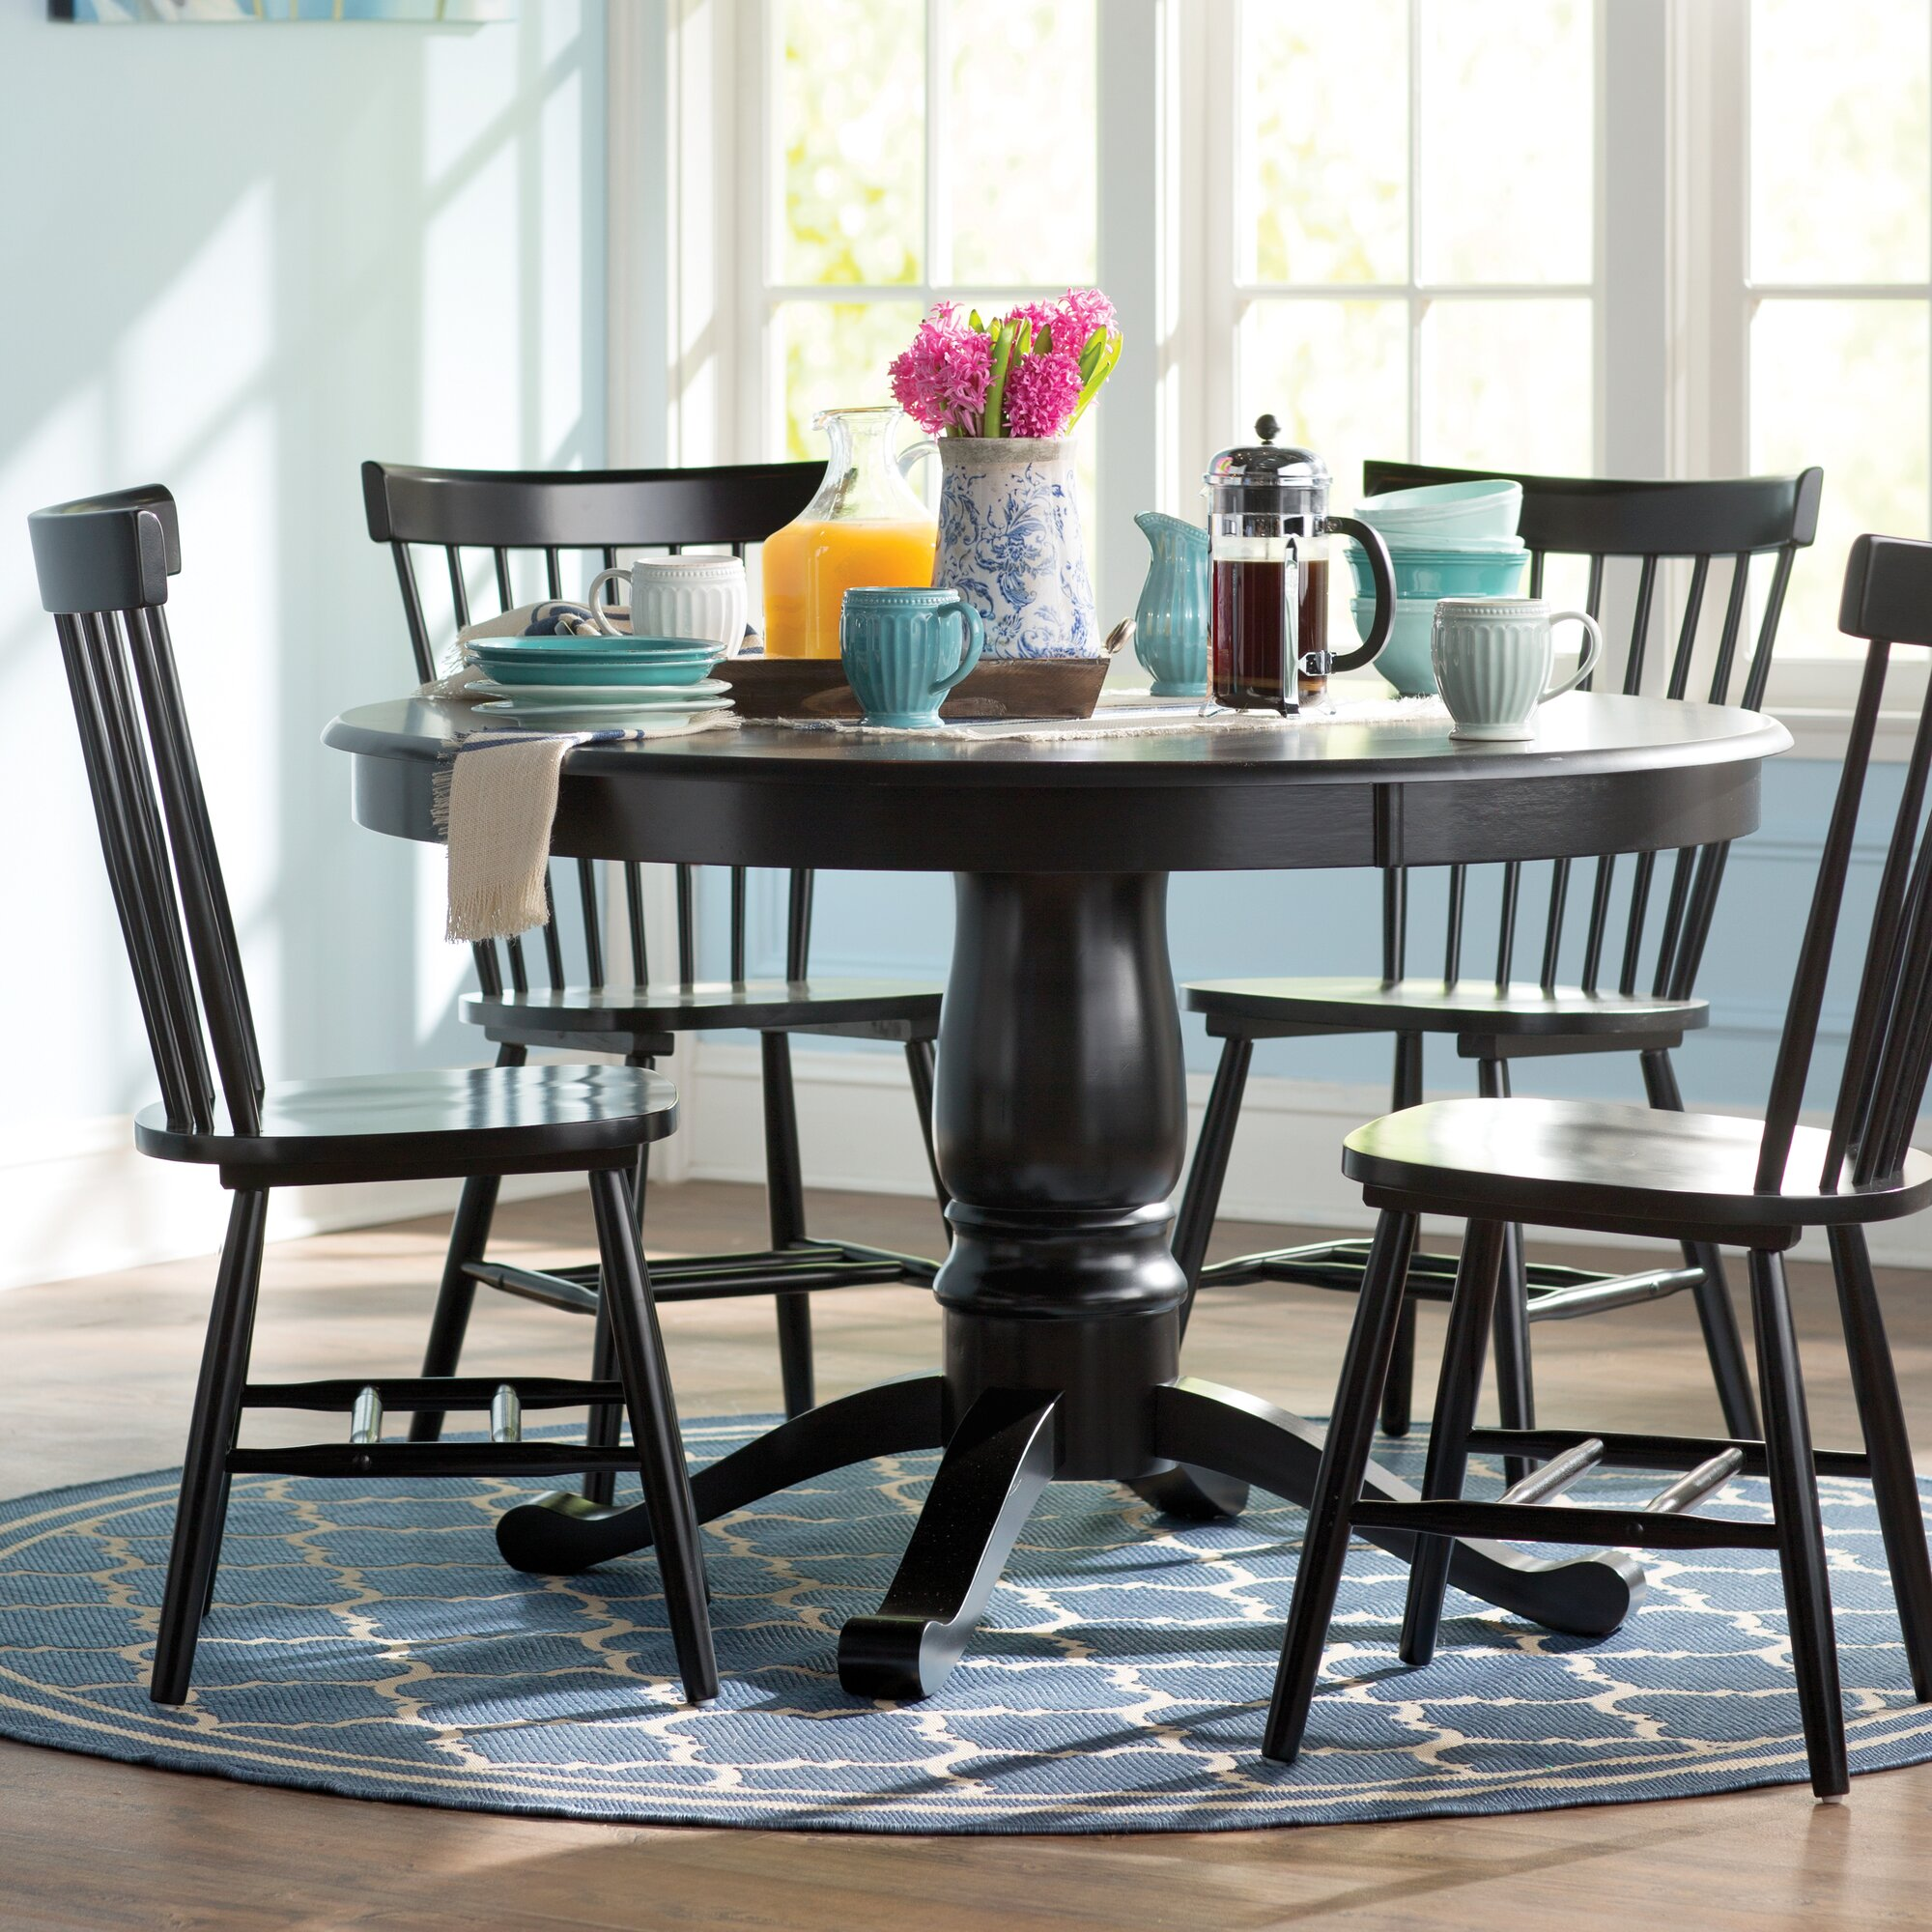 Breakwater bay benton 5 piece dining set reviews wayfair for 2 piece dining room set